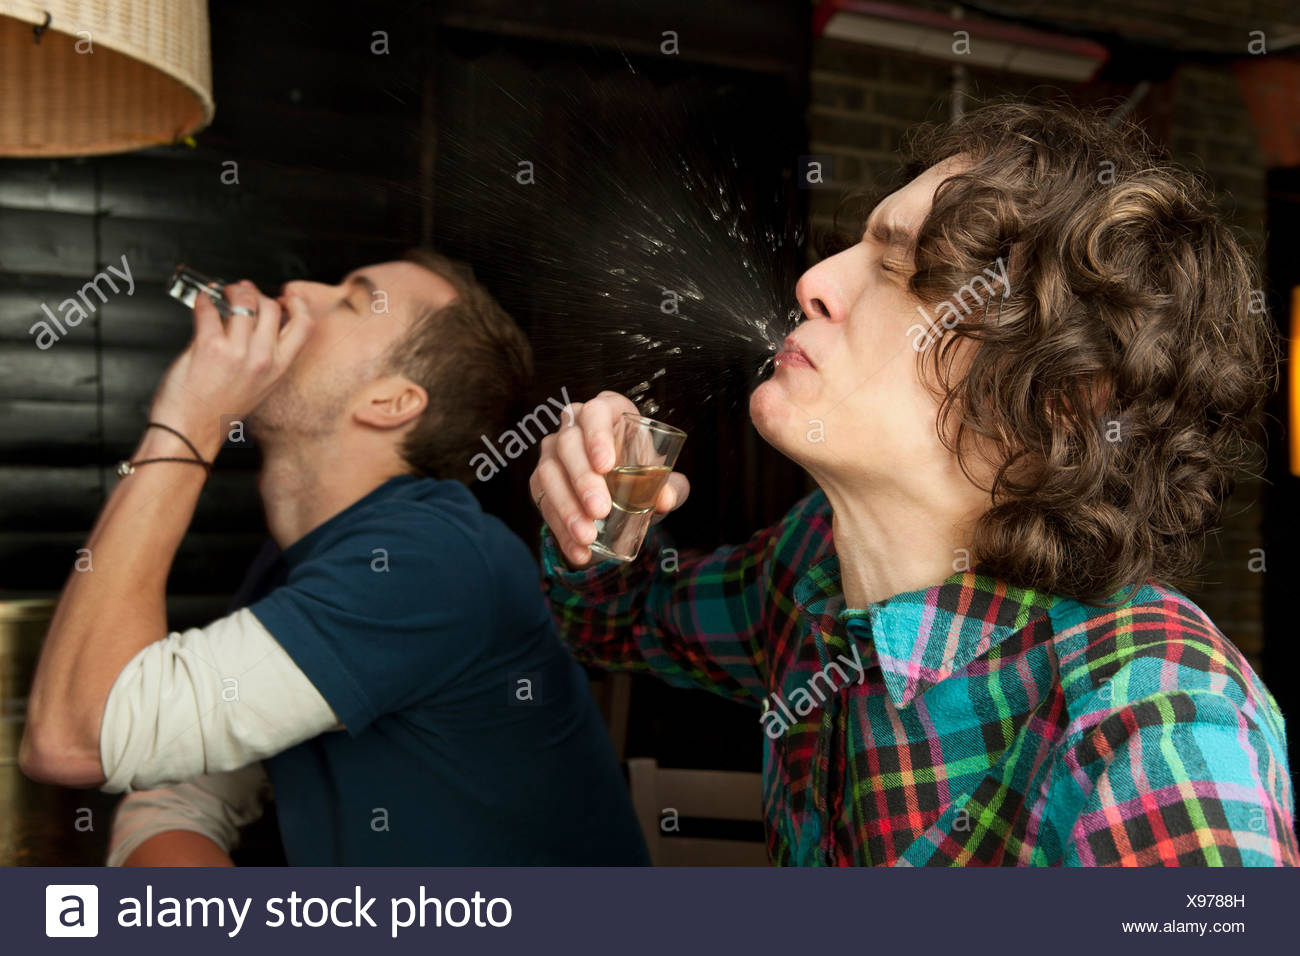 Two men drinking shots - Stock Image